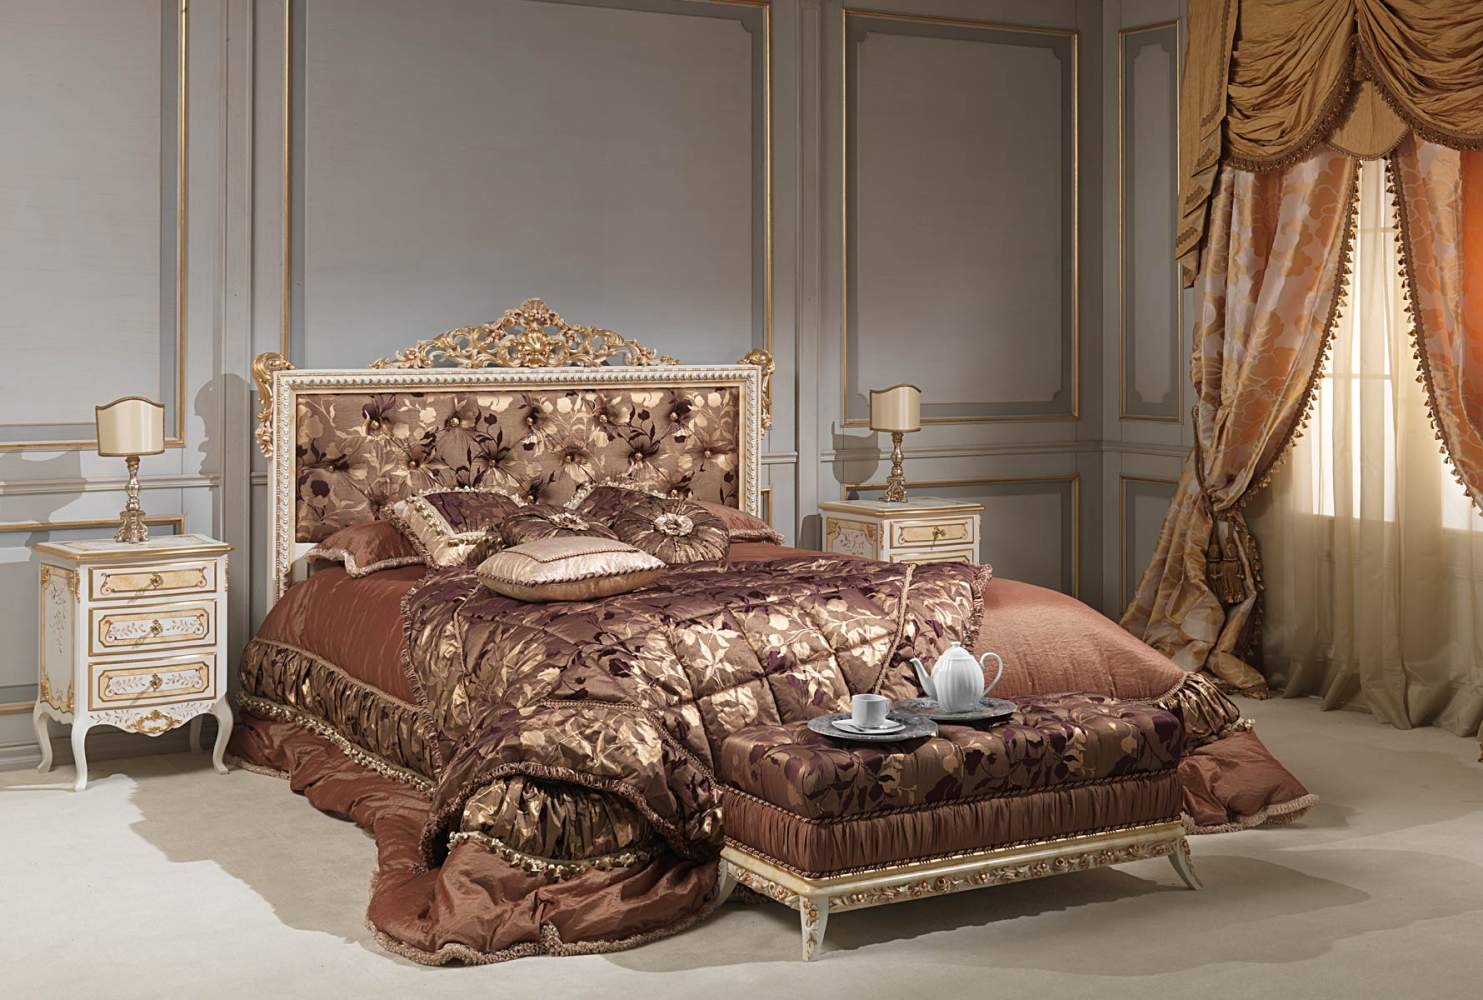 Classic Louvre bedroom, capitonnè bed in ivory, chest of drawers